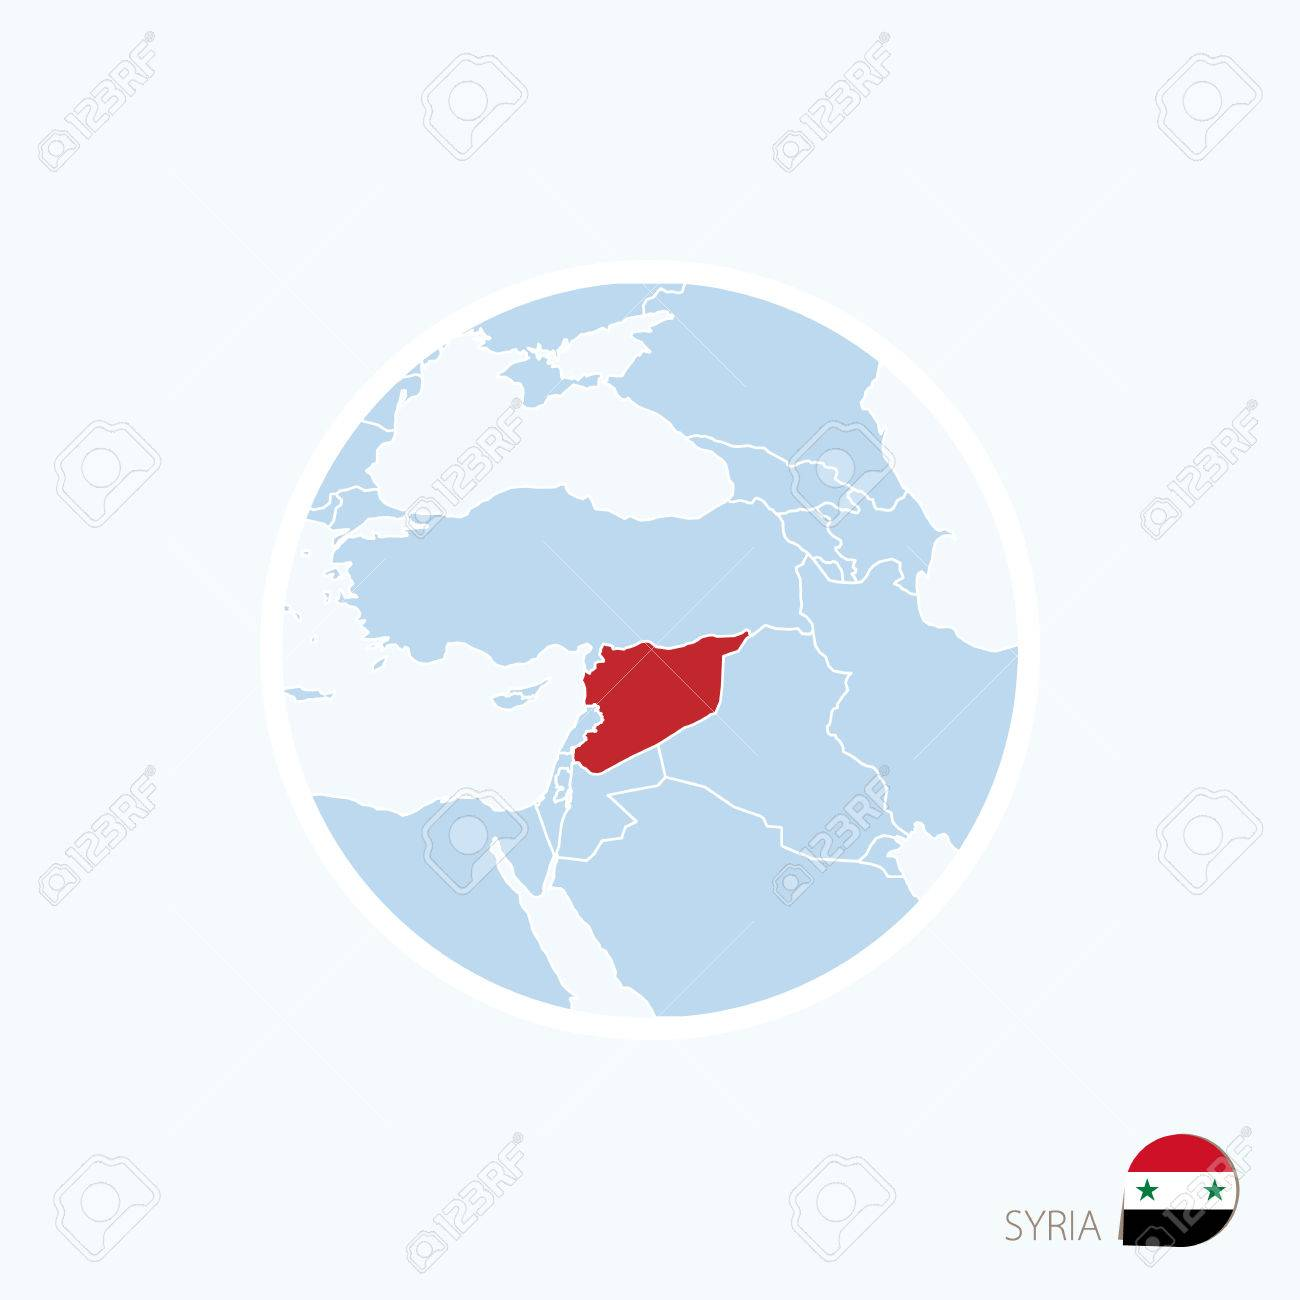 Map icon of Syria. Blue map of Middle East with highlighted Syria..